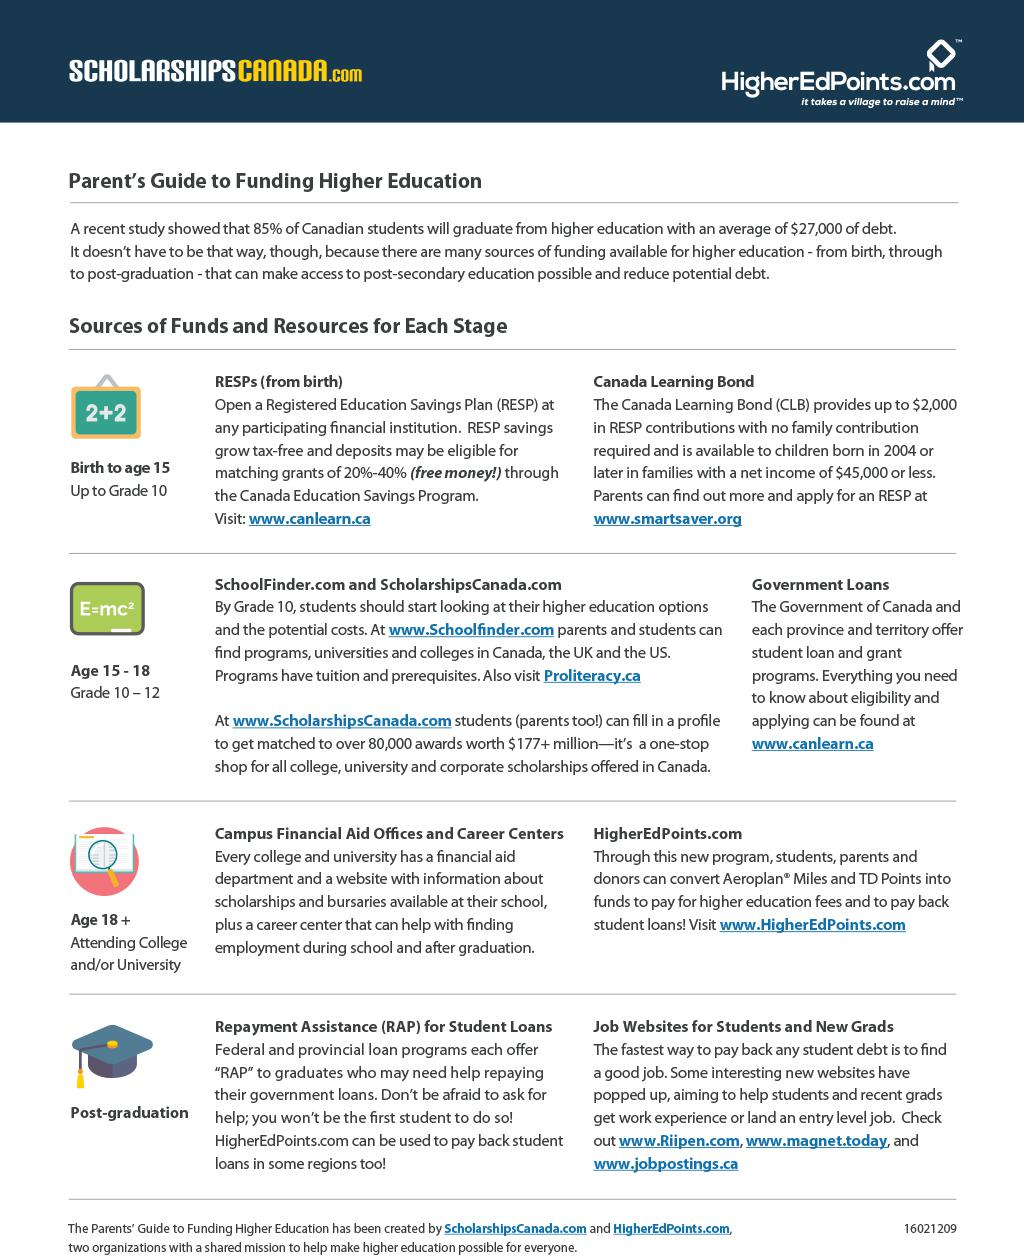 Parents Guide to Funding Higher Education